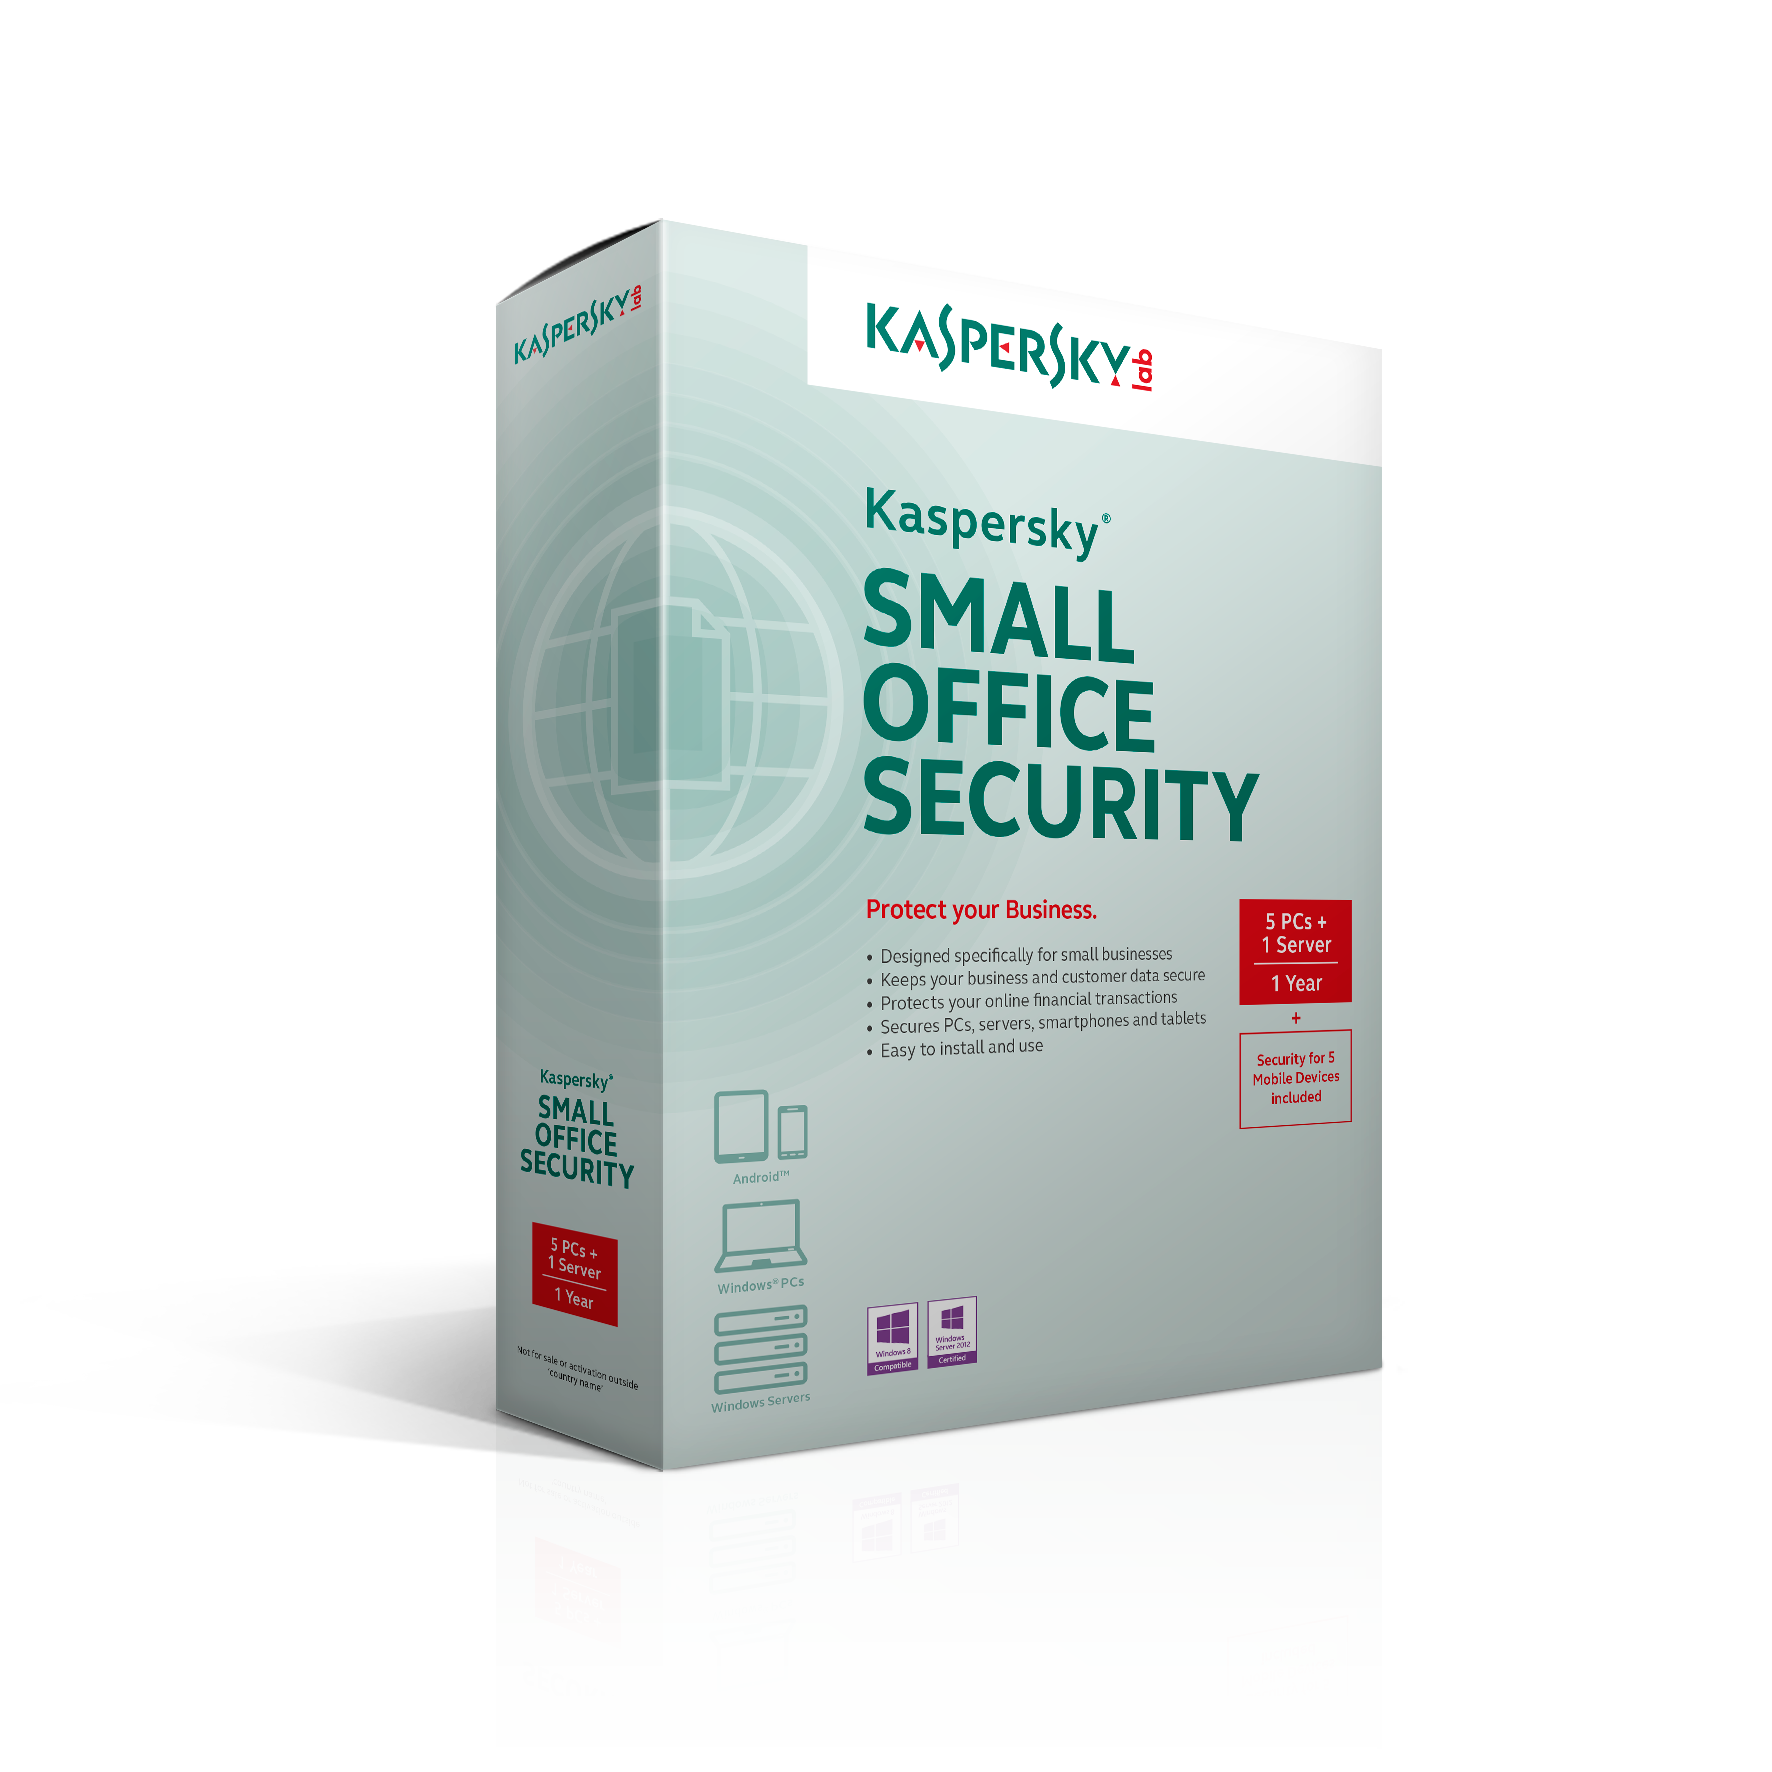 Kaspersky Small Office Security Review Expert Reviews